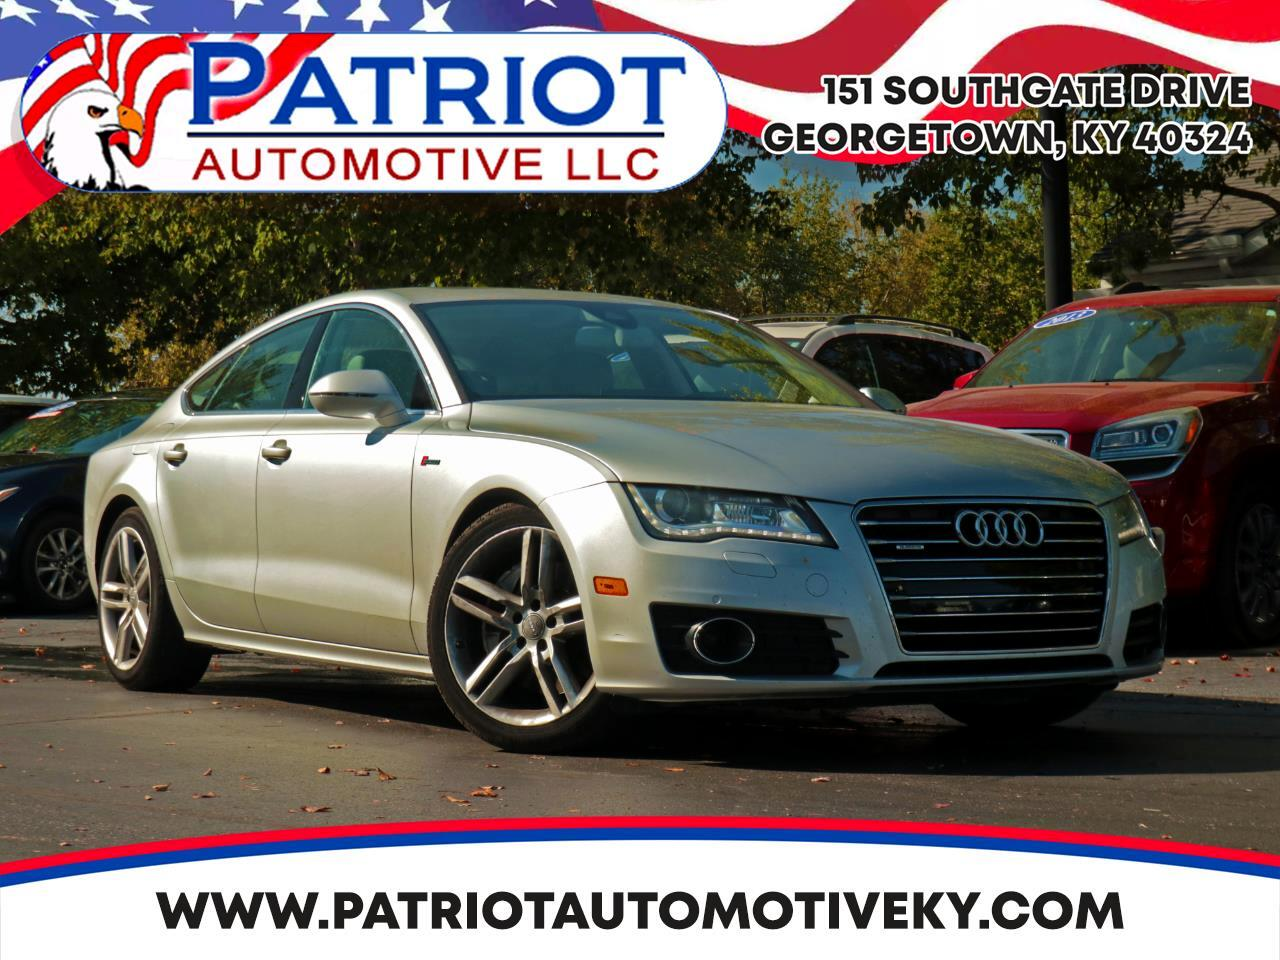 2012 Audi A7 4dr HB qualtro 3.0 Premium Plus AWD Supercharged